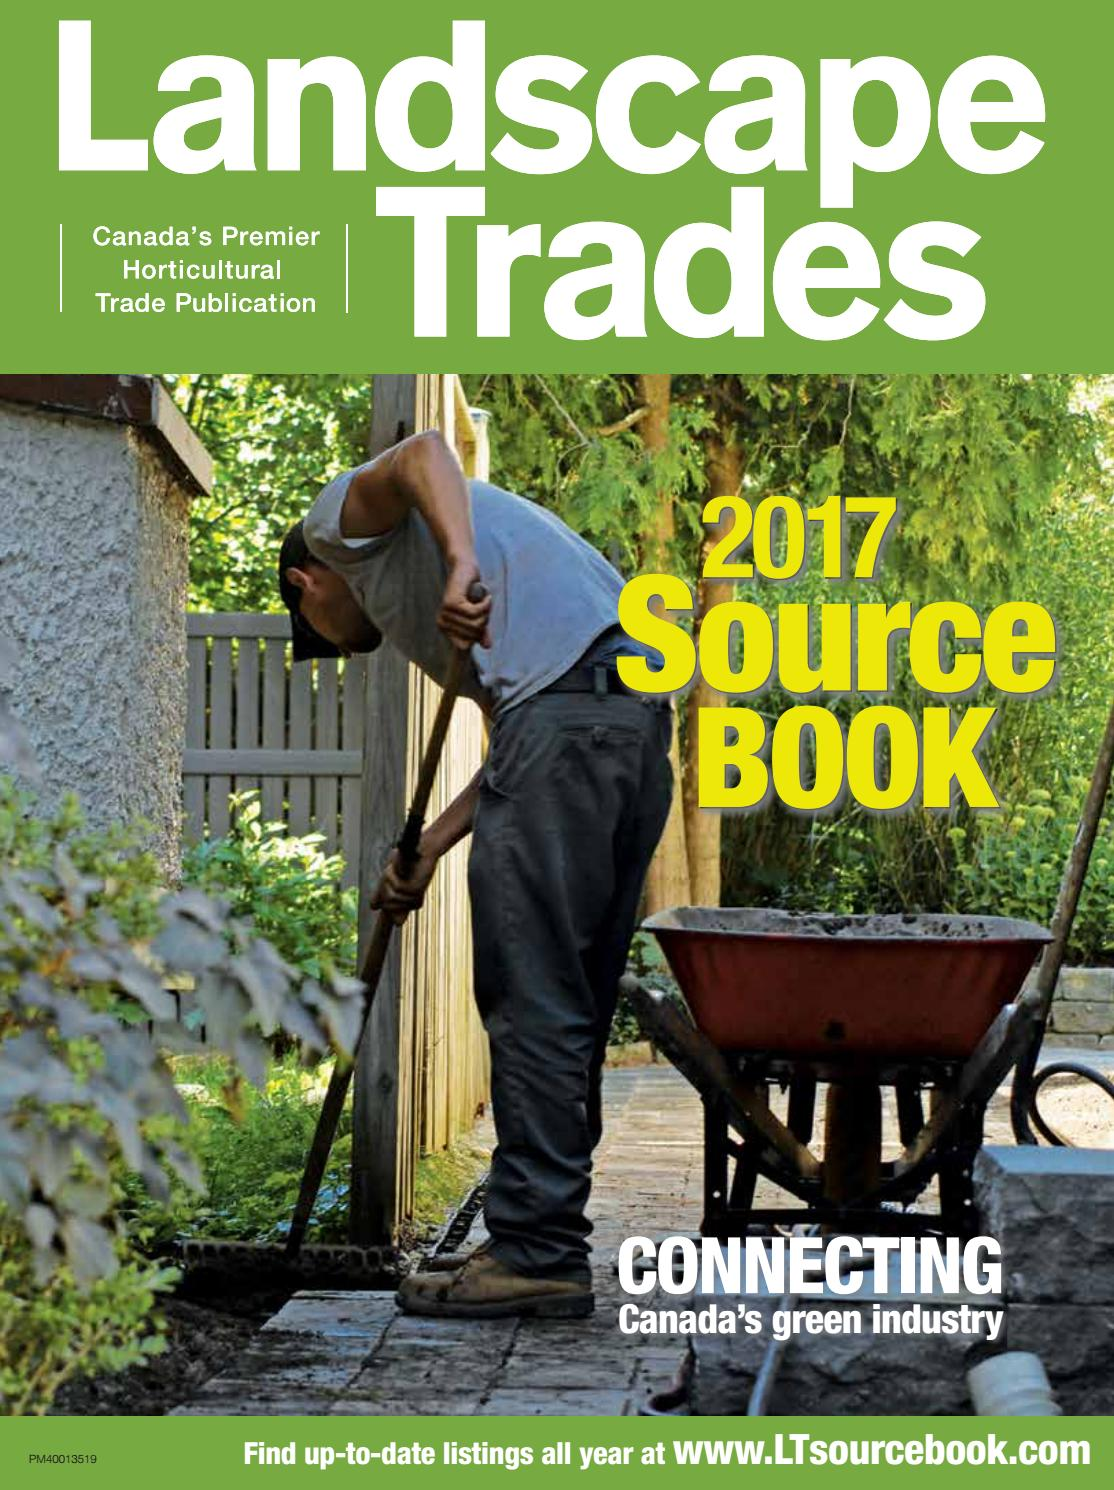 Maheu Meubles/furniture 1027 Notre Dame St Embrun On K0a 1w1 May 2017 Landscape Trades Source Book By Mike Wasilewski Issuu